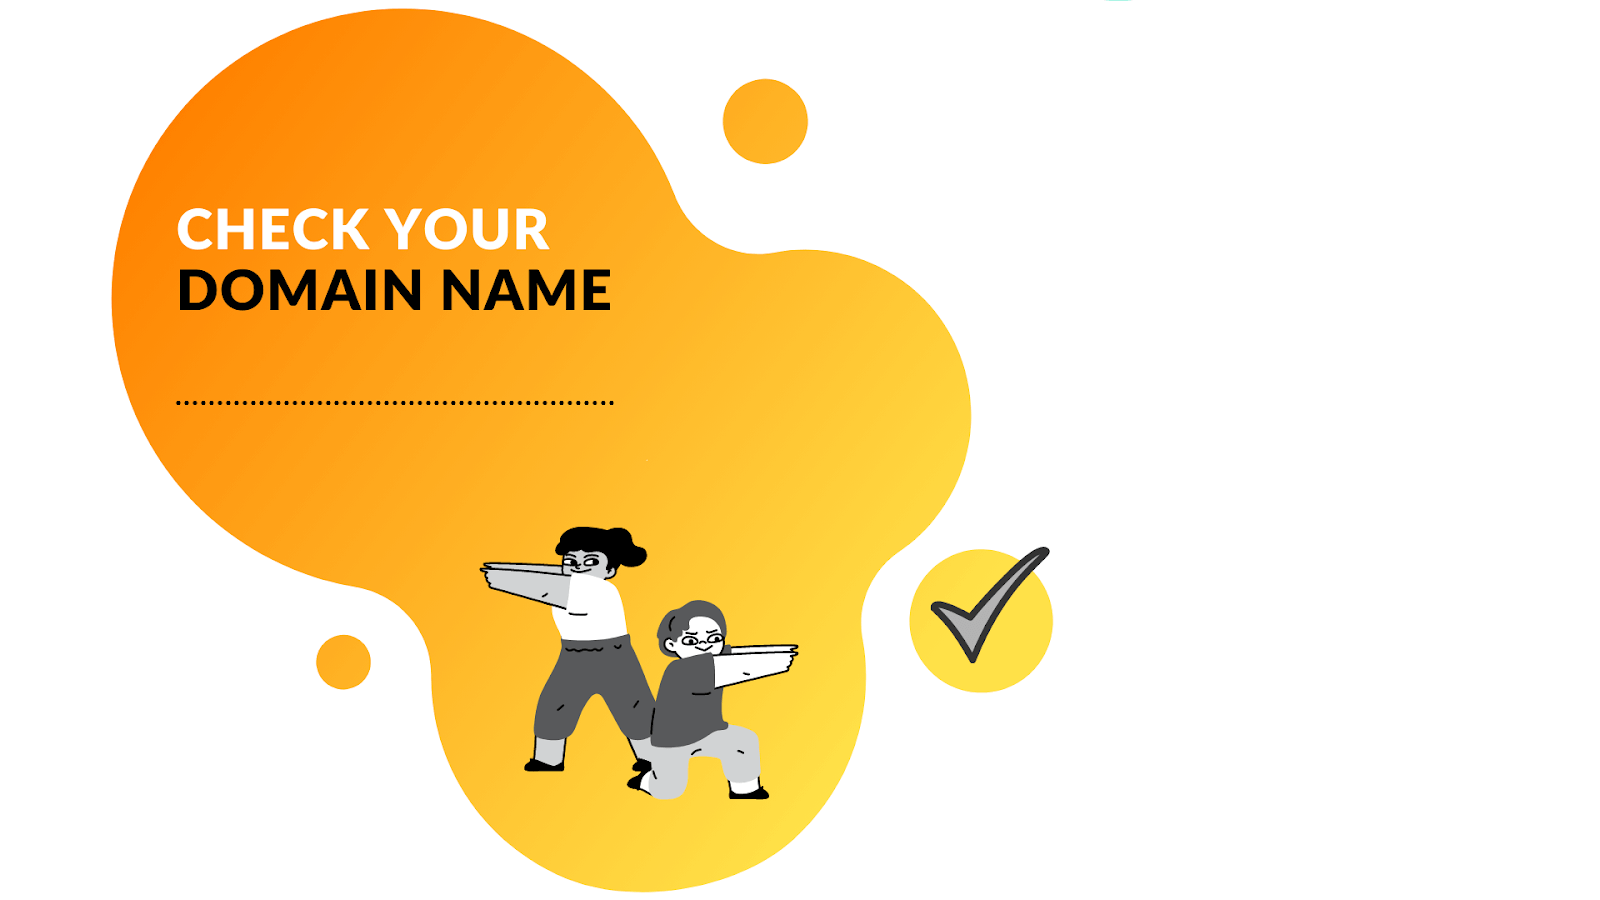 Make sure you check your domain properly before making a decision